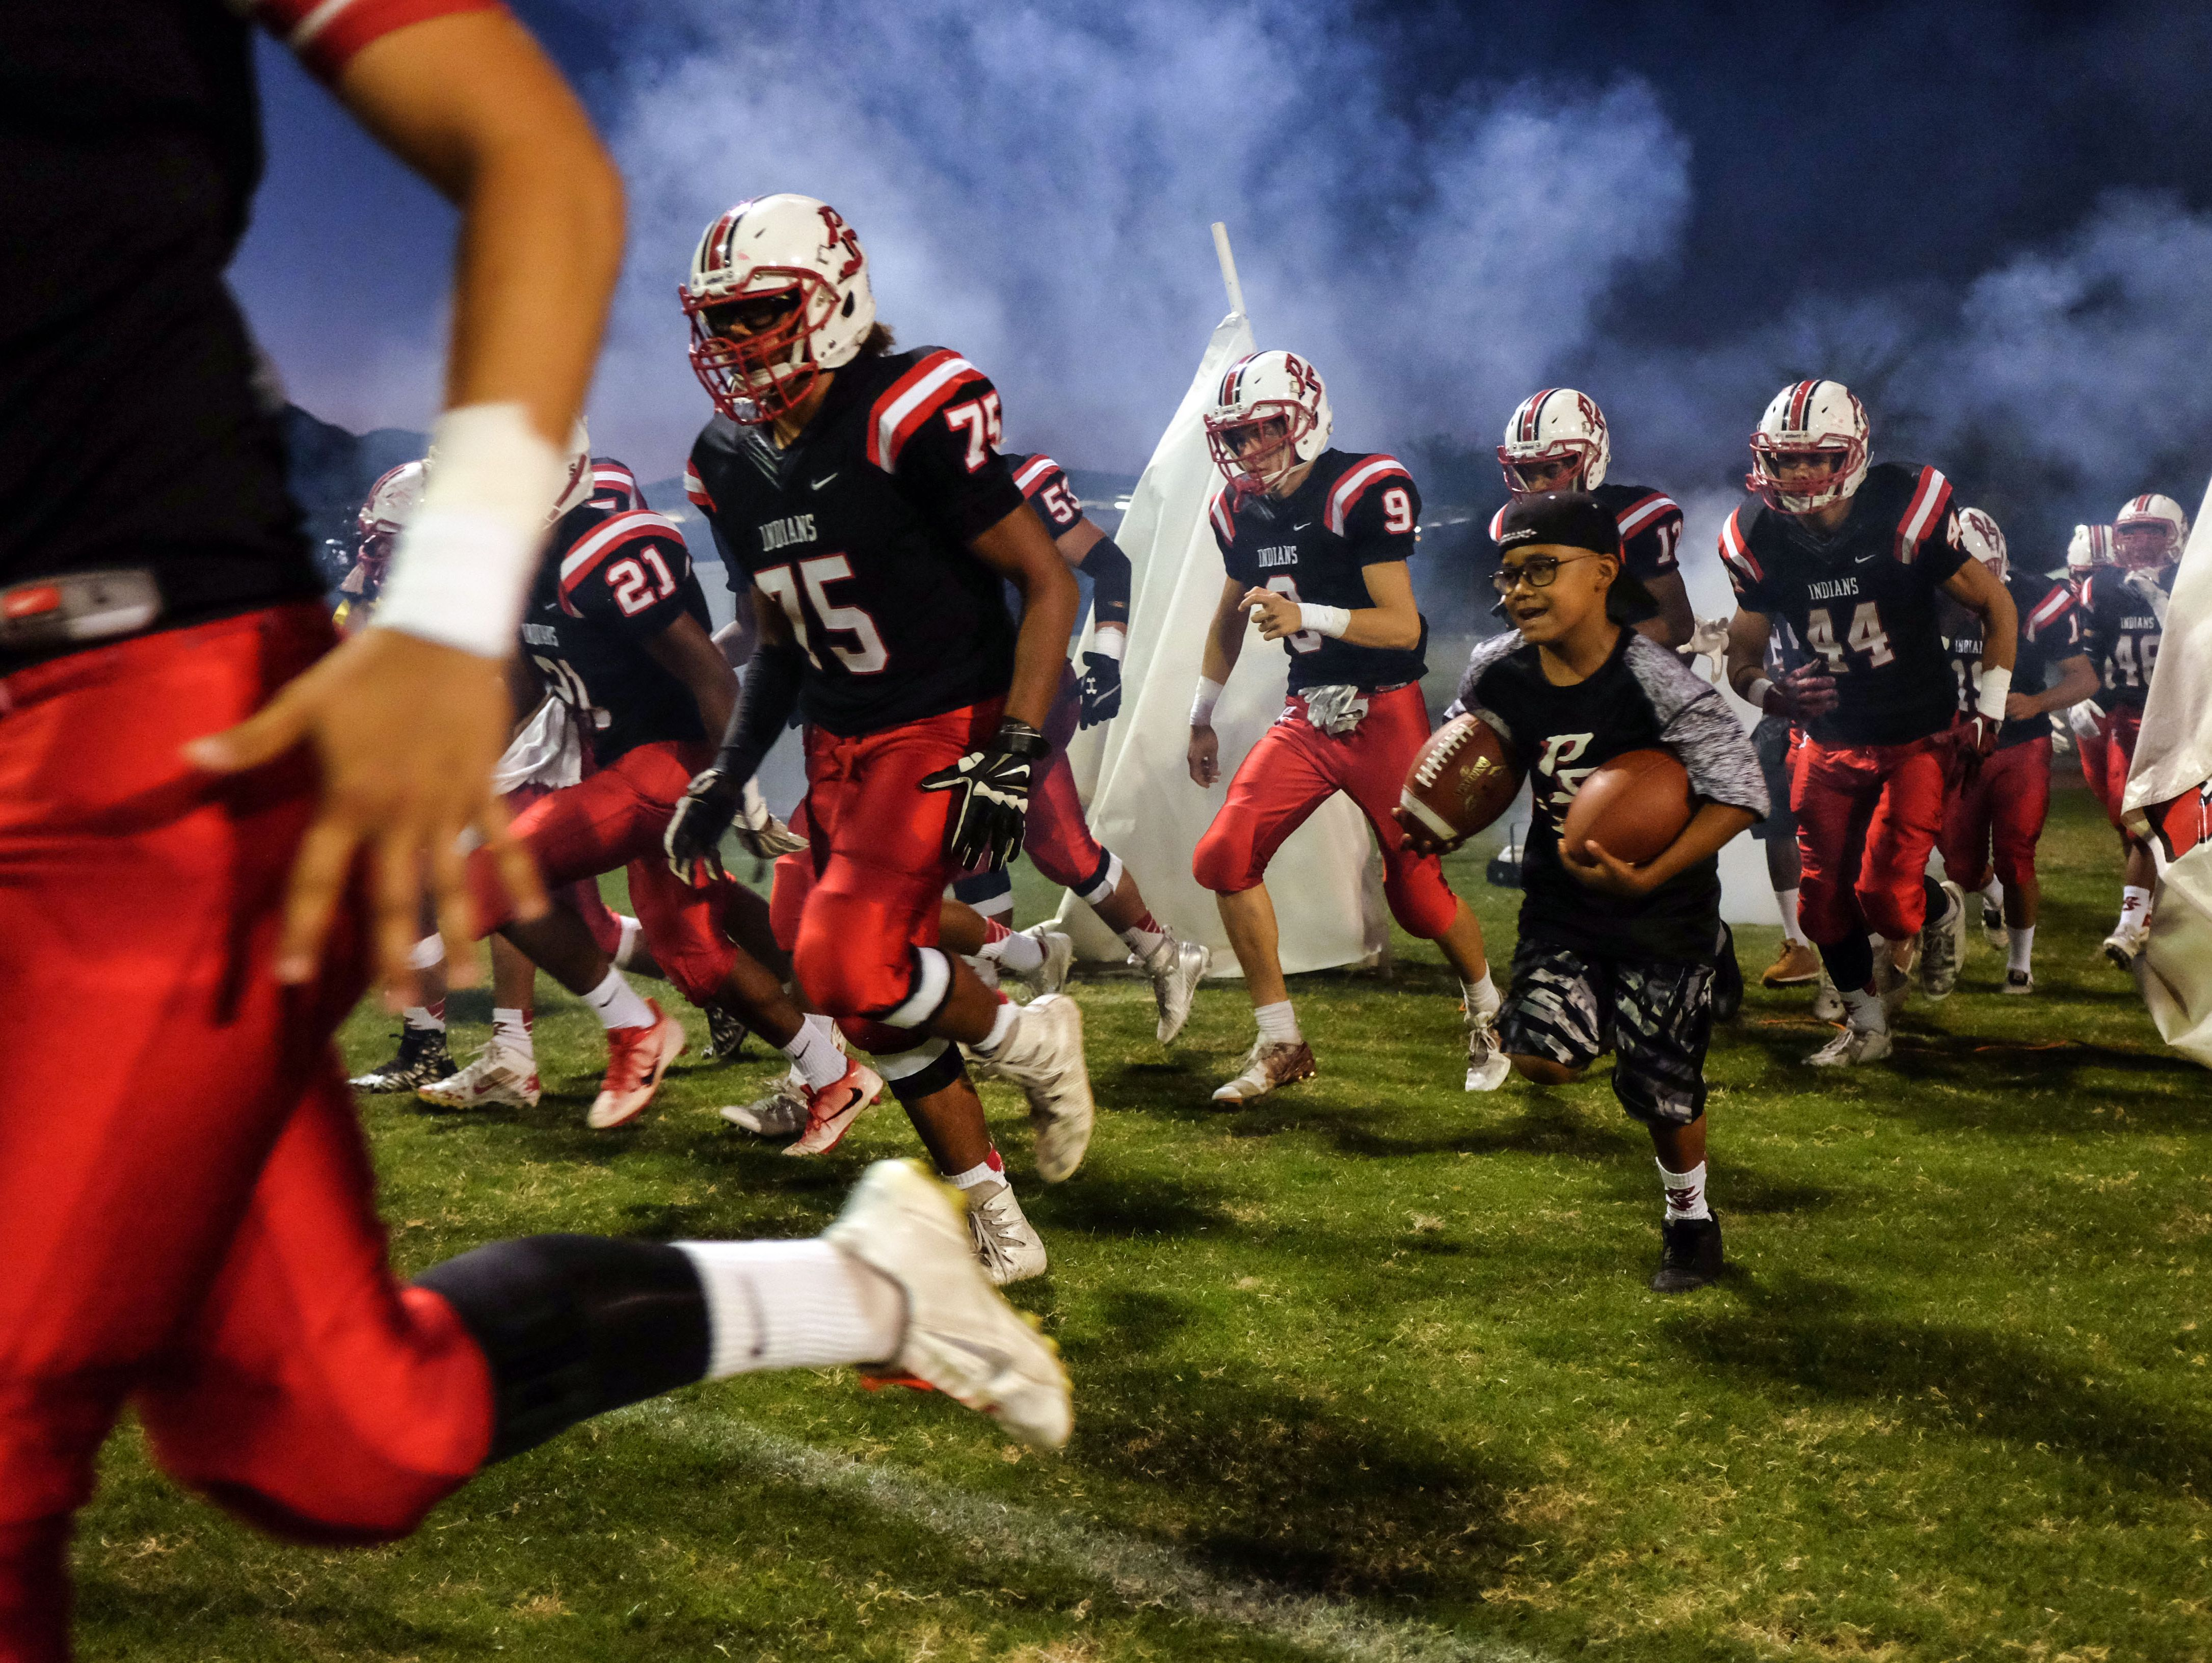 Palm Springs and La Quinta football action on Friday, September 30, 2016 in Palm Springs.